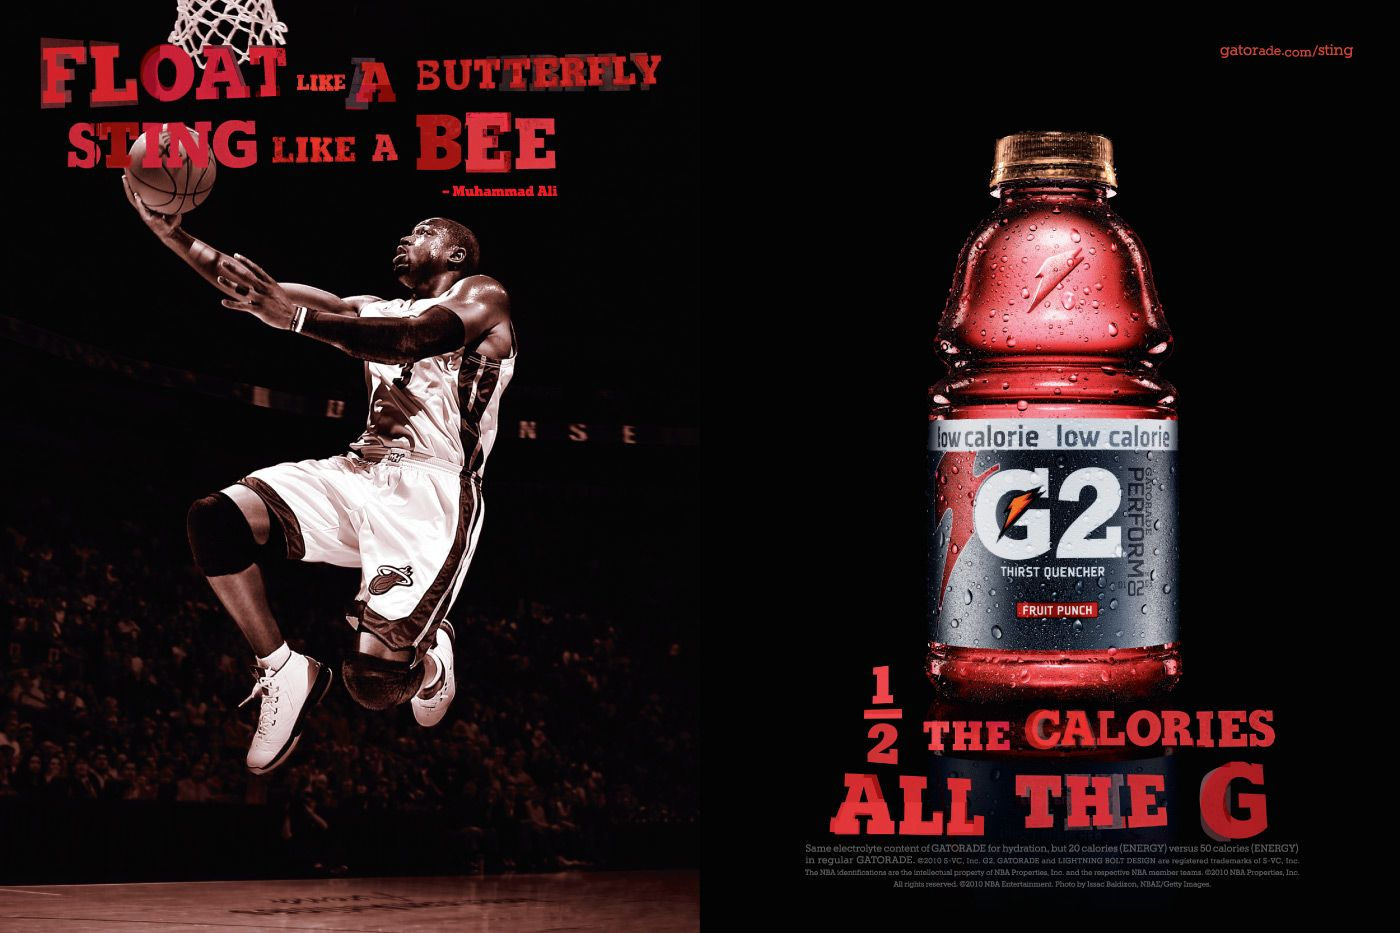 stereotypical sports drink ad with professional male